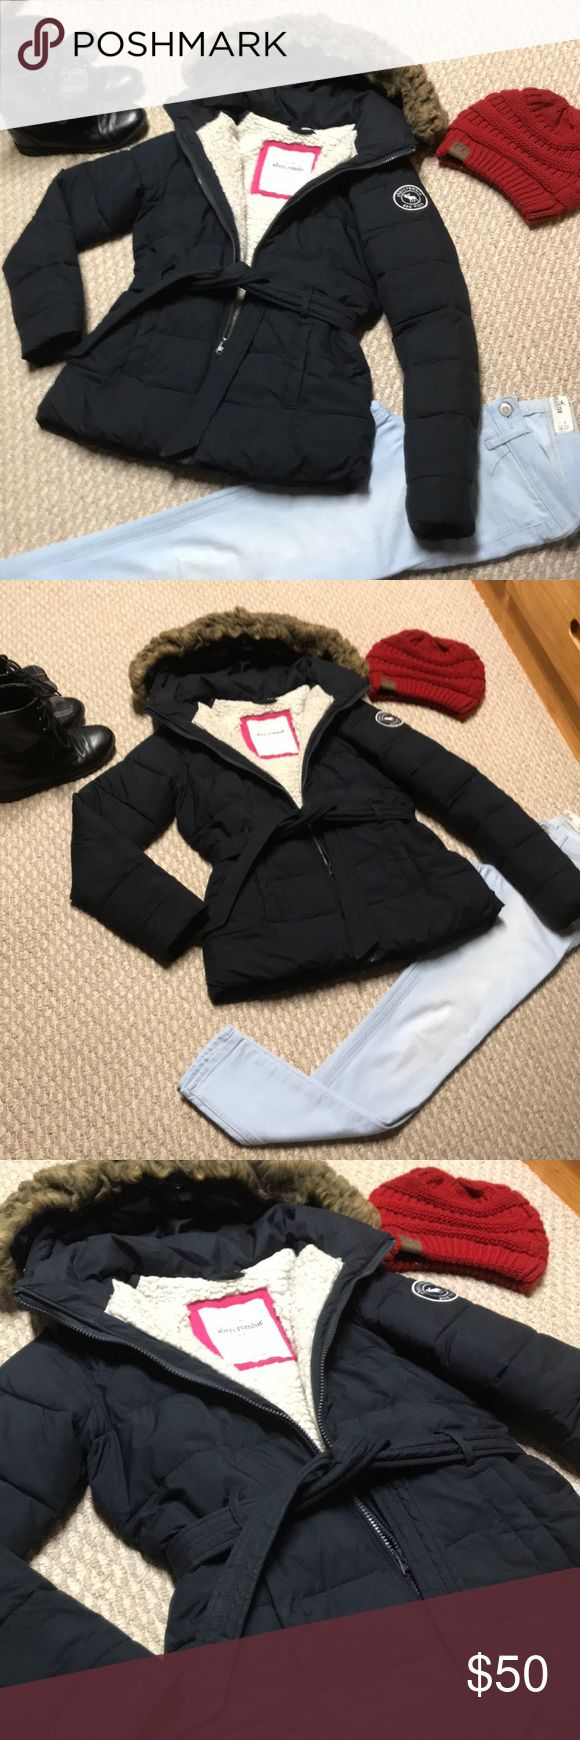 Abercrombie and Fitch puffer Gorgeous, gently used girls a&f navy blue puffer coat. Ties at the waist, stops mid tush. Extremely soft material, with vegan fur inside and lined hood. Girls xl (size 12-14) true to size. Was worn only a dozen times by my daughter last winter and this winter she had a huge growth spurt, outgrowing everything. No stains or flaws of any kind. No pilling, no signs of wear. Abercrombie & Fitch Jackets & Coats Puffers